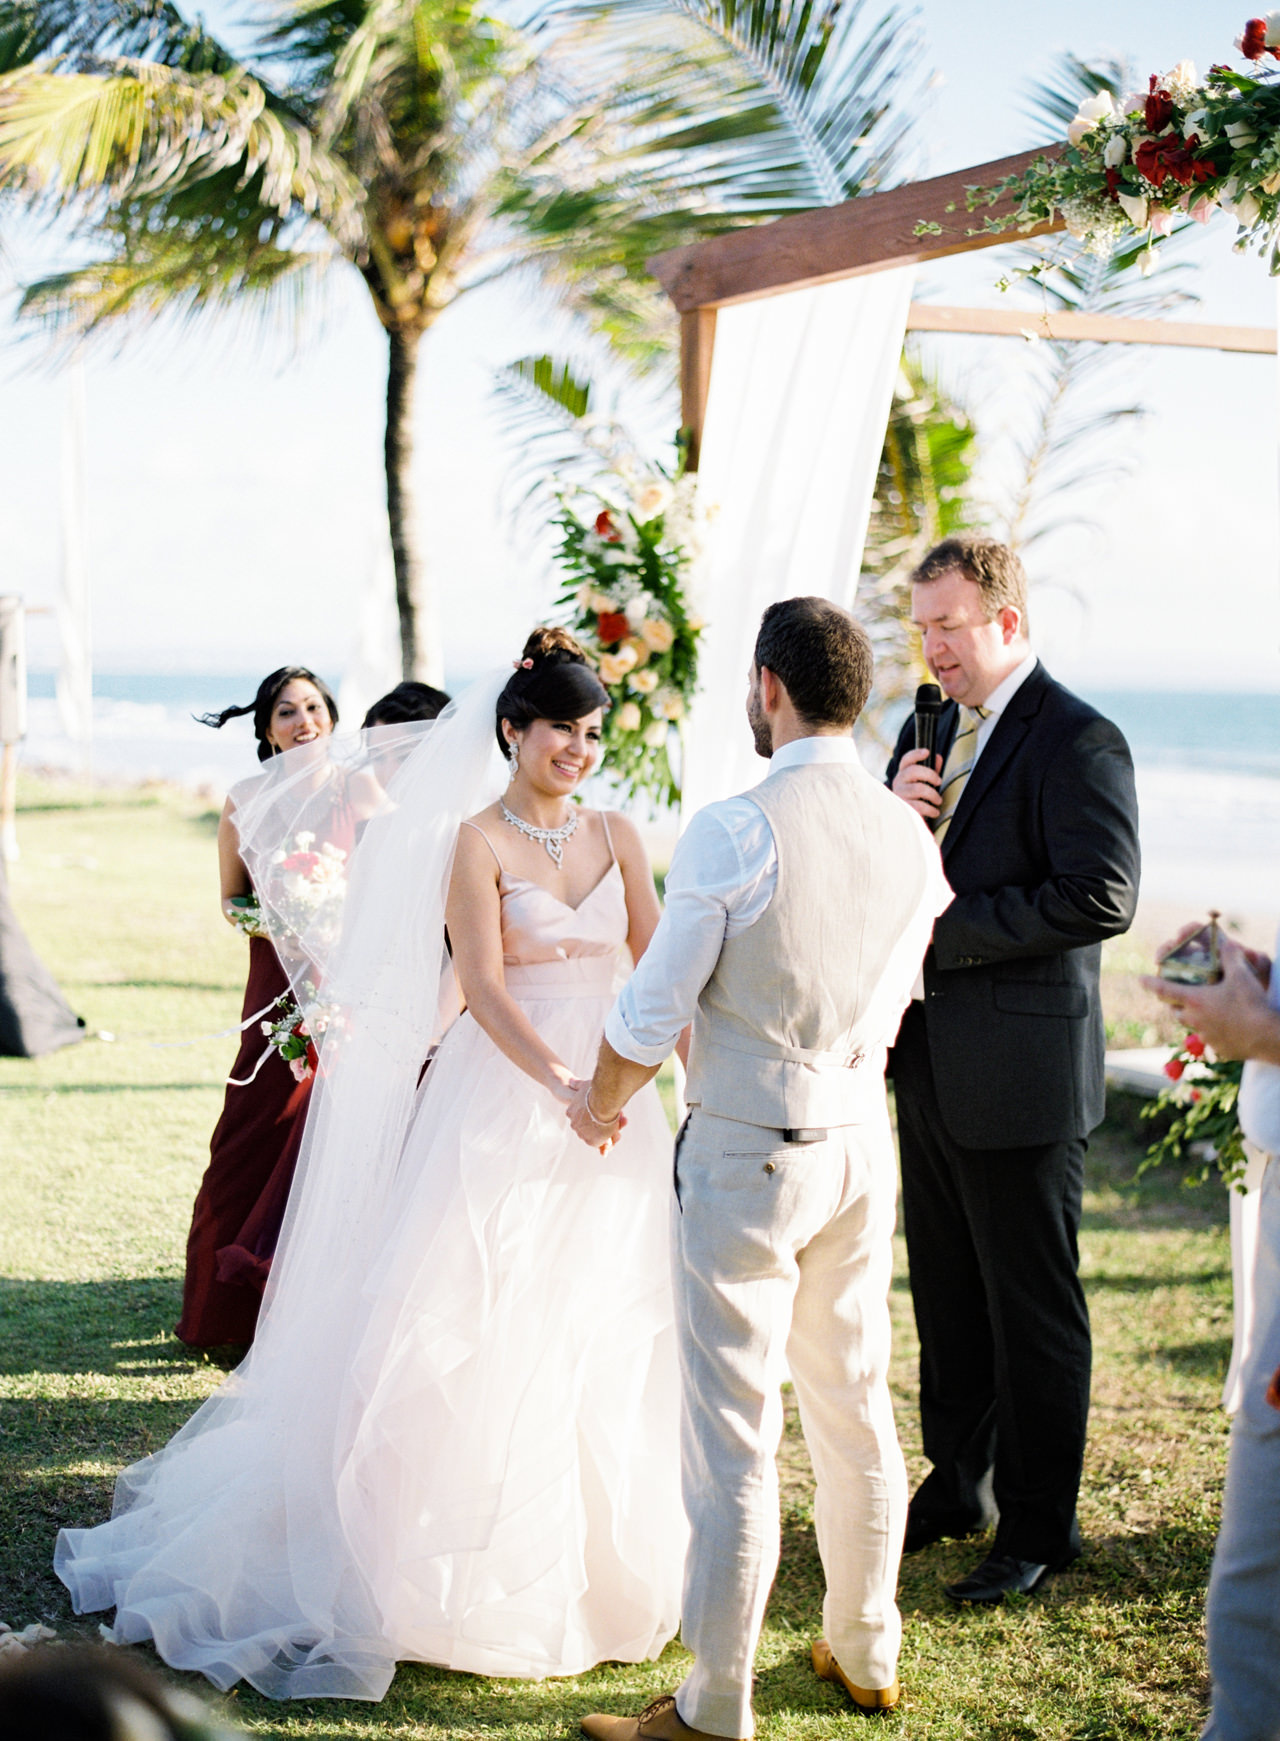 P&C: Getting Married in Bali 15